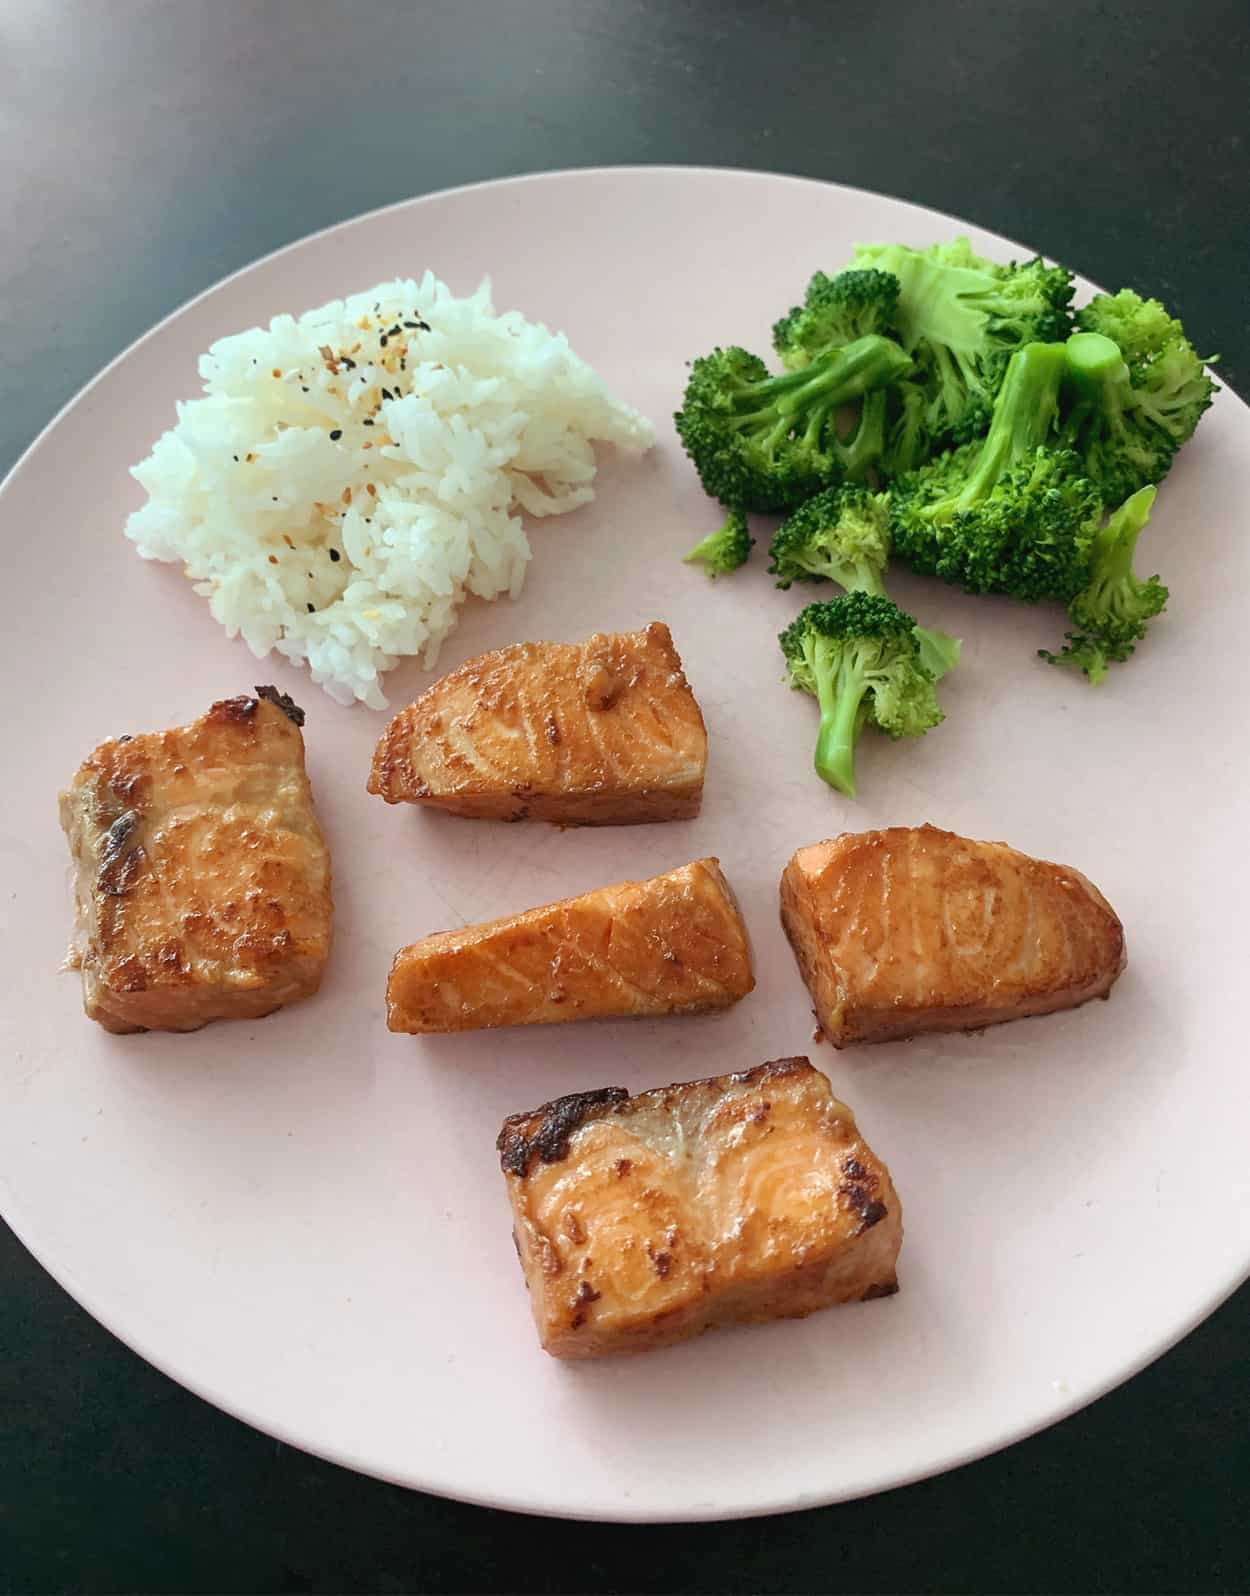 Homemade Asian salmon is an easy lunch idea to make at home!